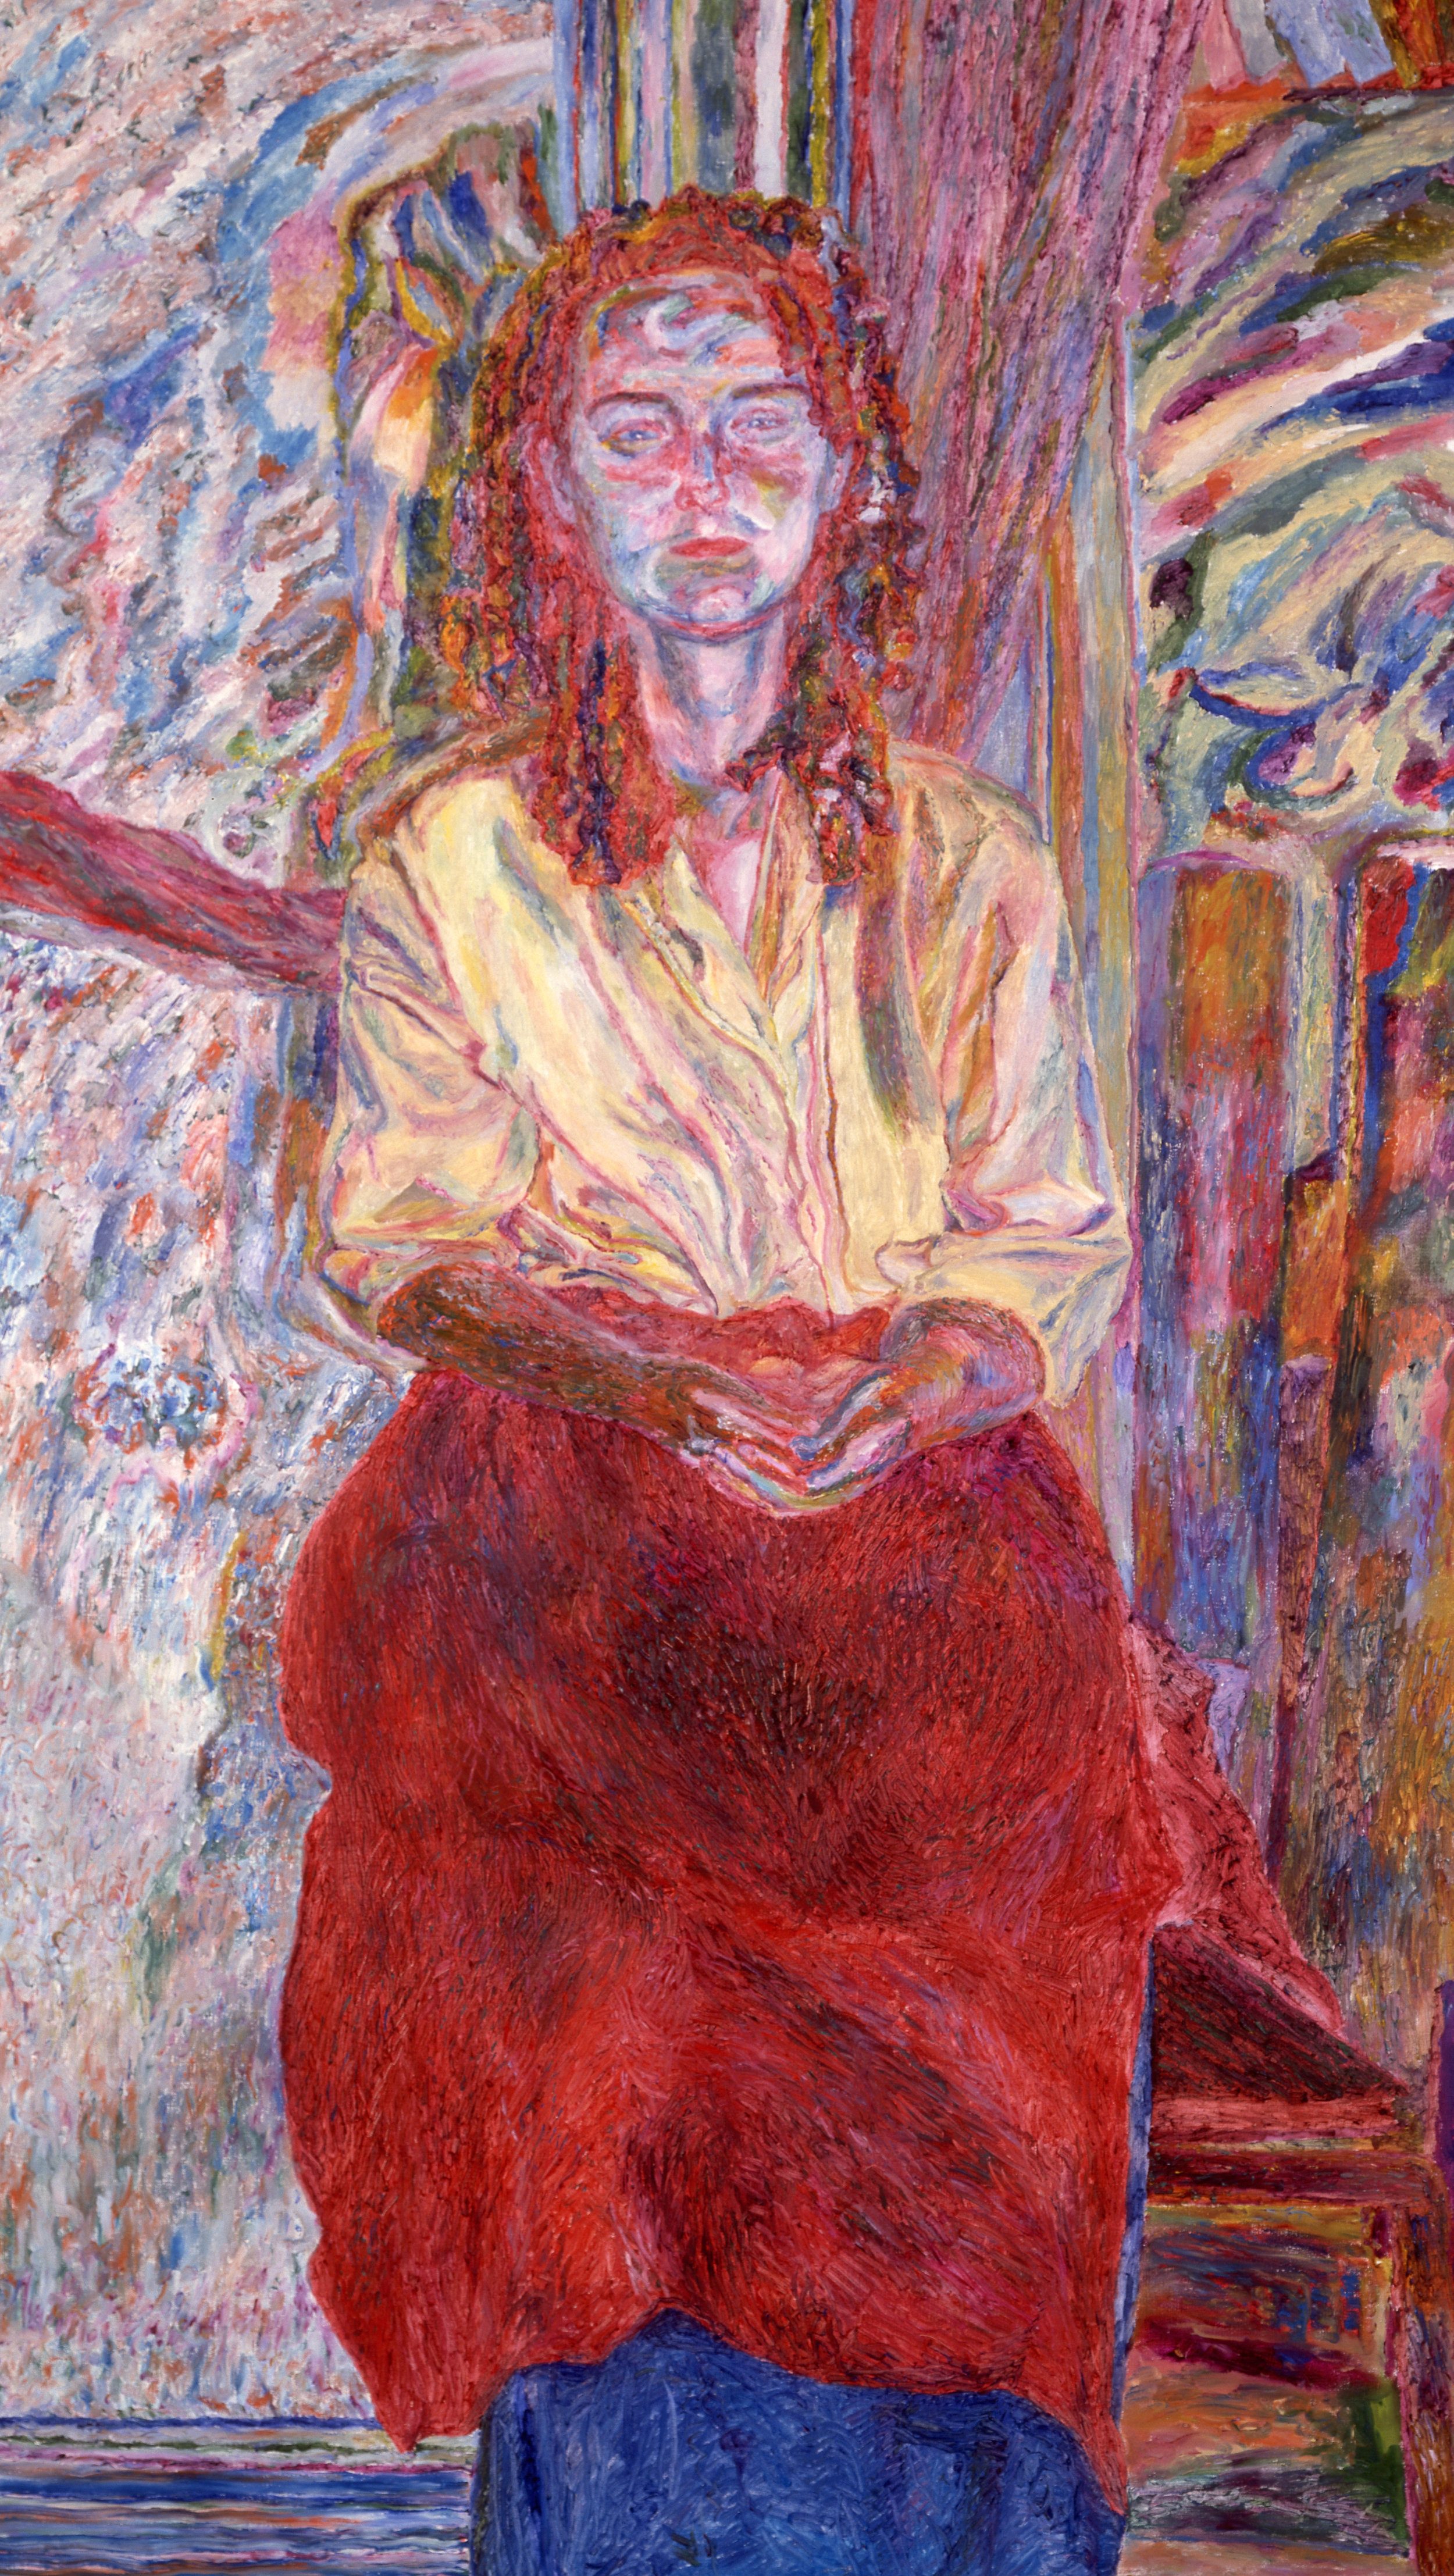 Woman with a Red Apron